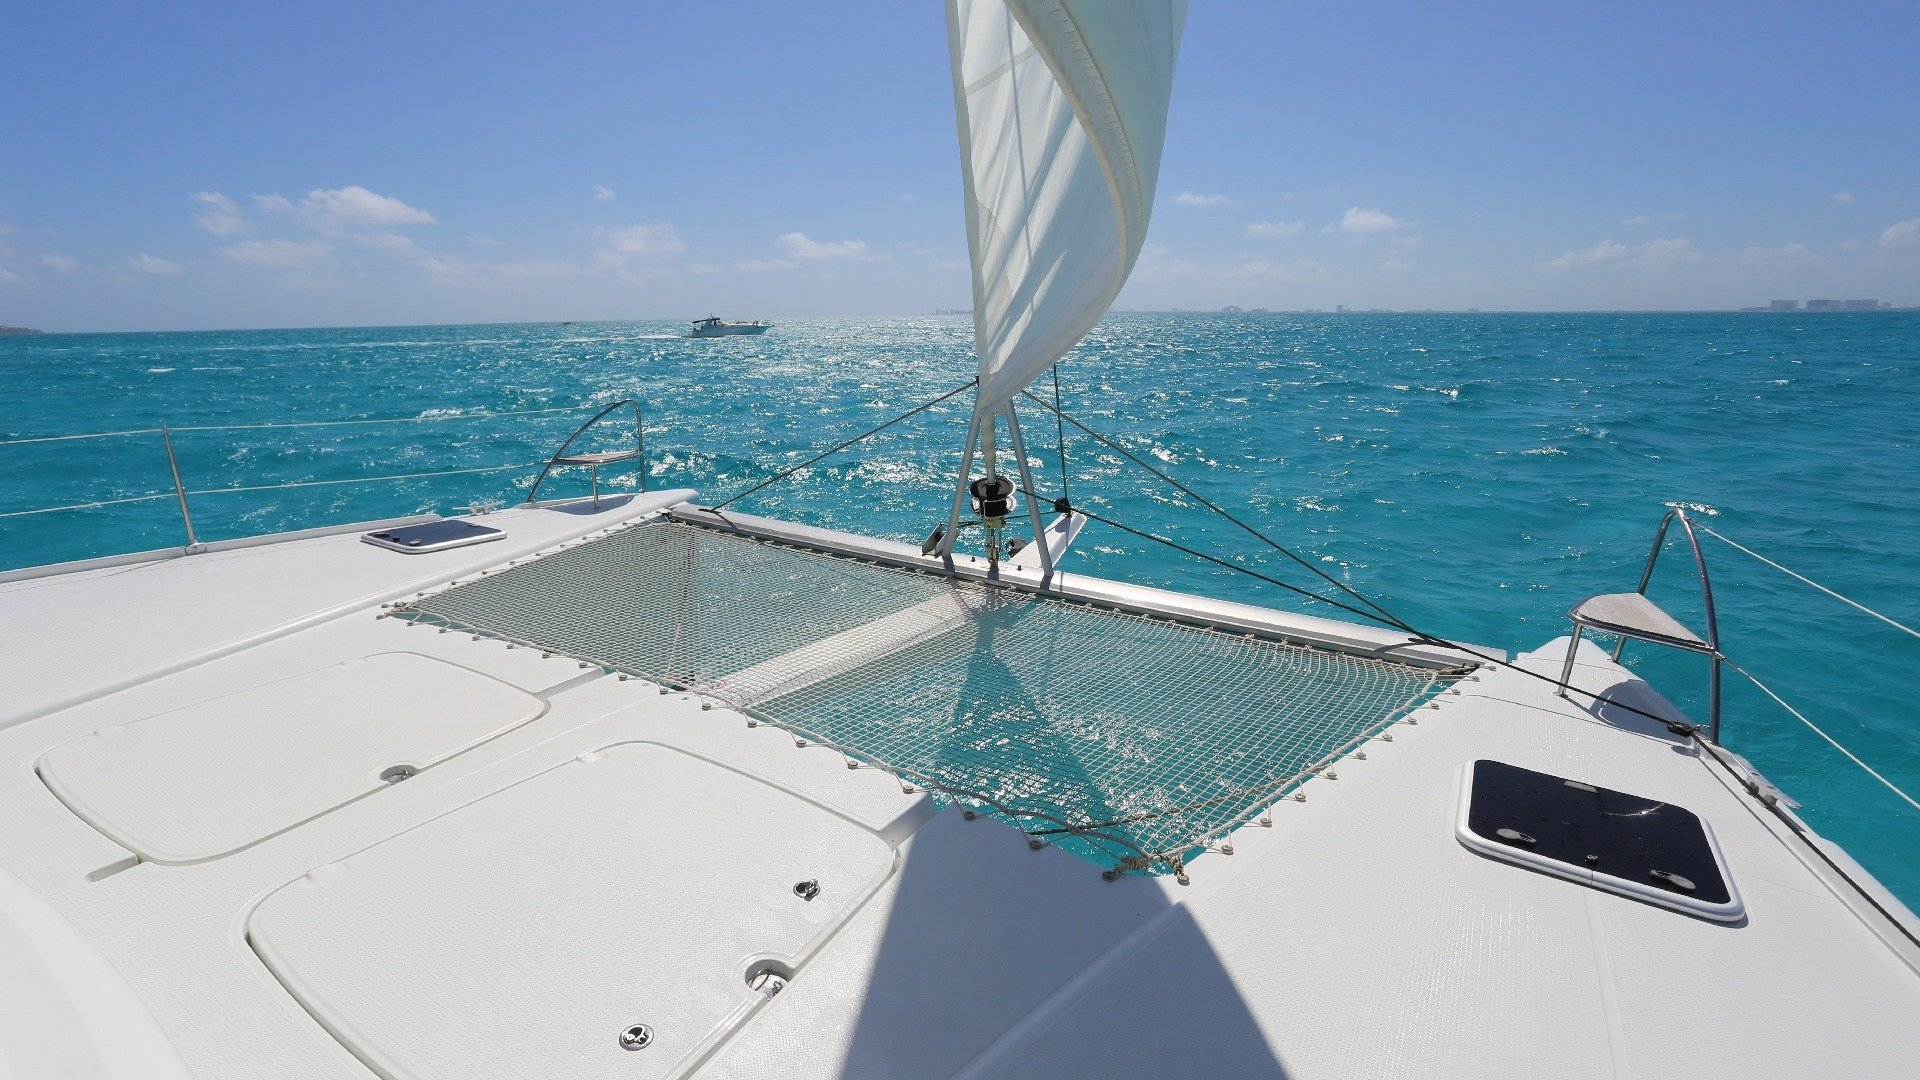 2 - LowRes - Gypse - Private tour to Isla Mujeres in catamaran - Cancun Sailing